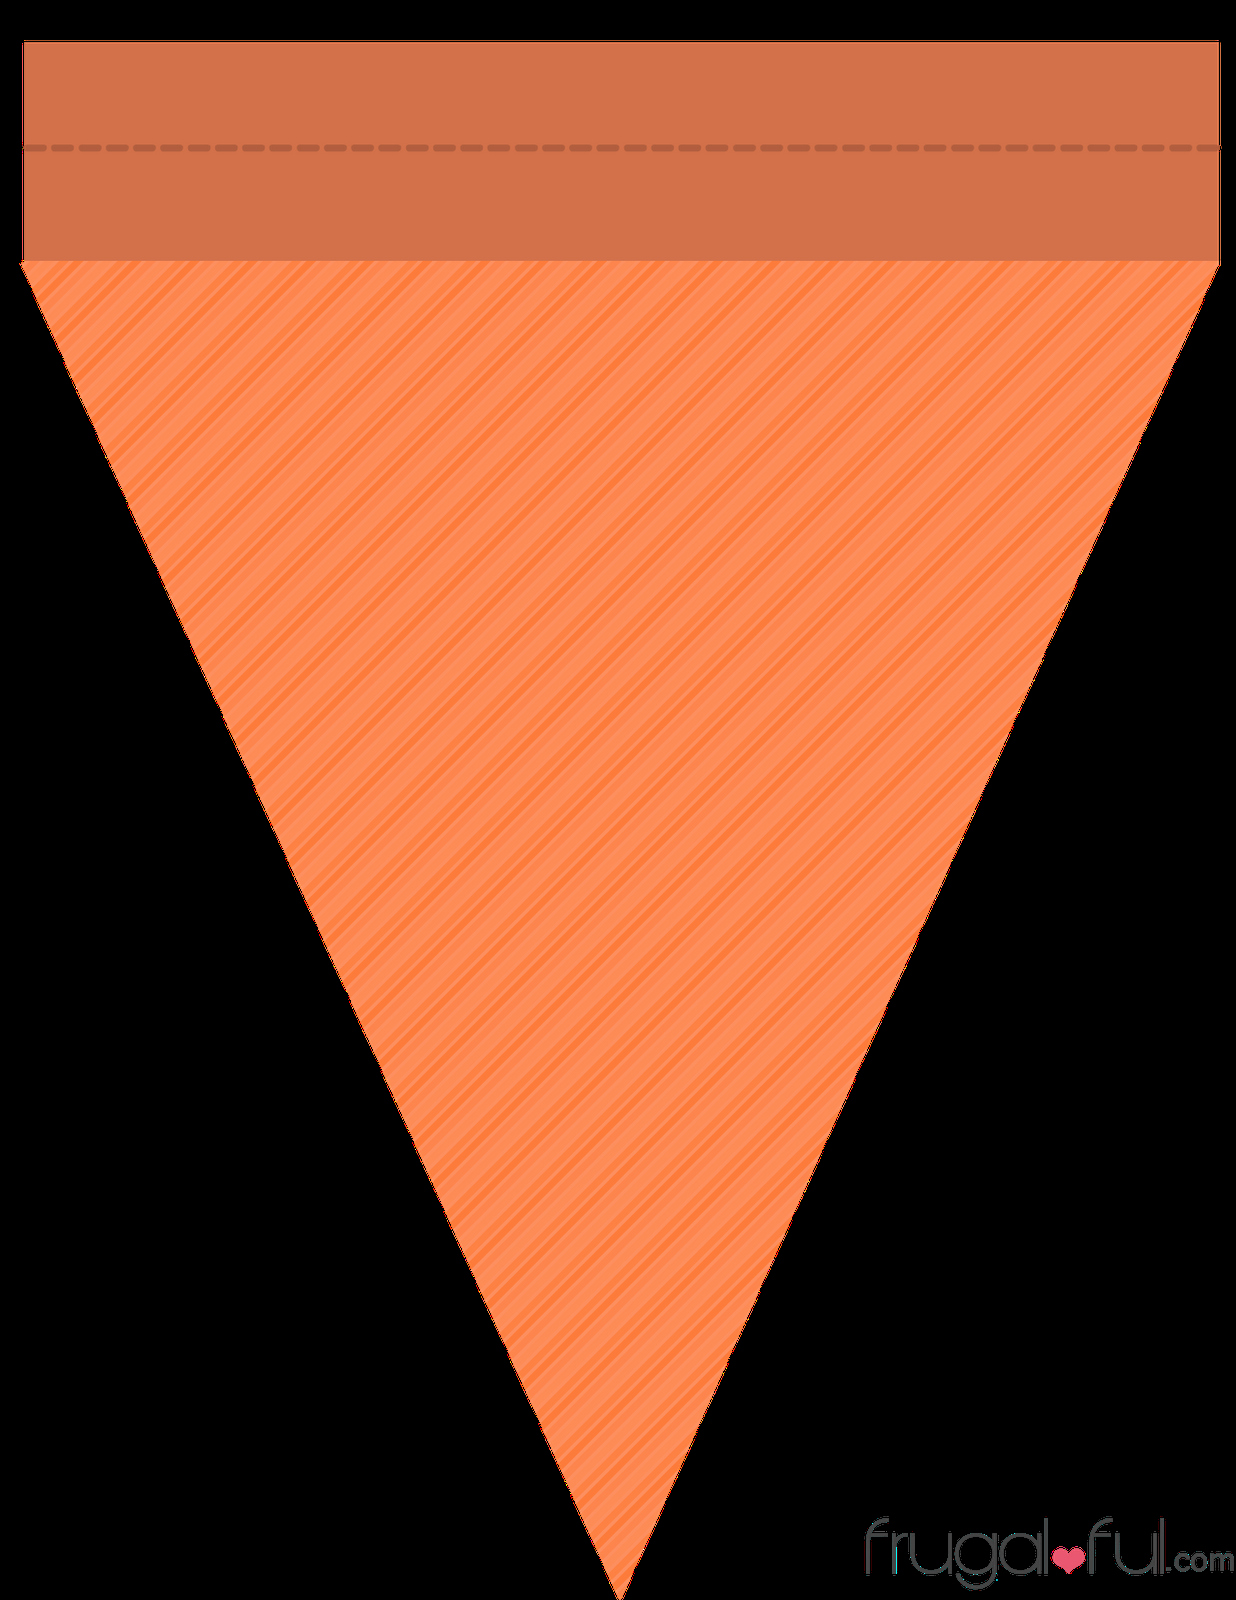 Banner Triangle Template Awesome Diy Free Printable Halloween Triangle Banner Template